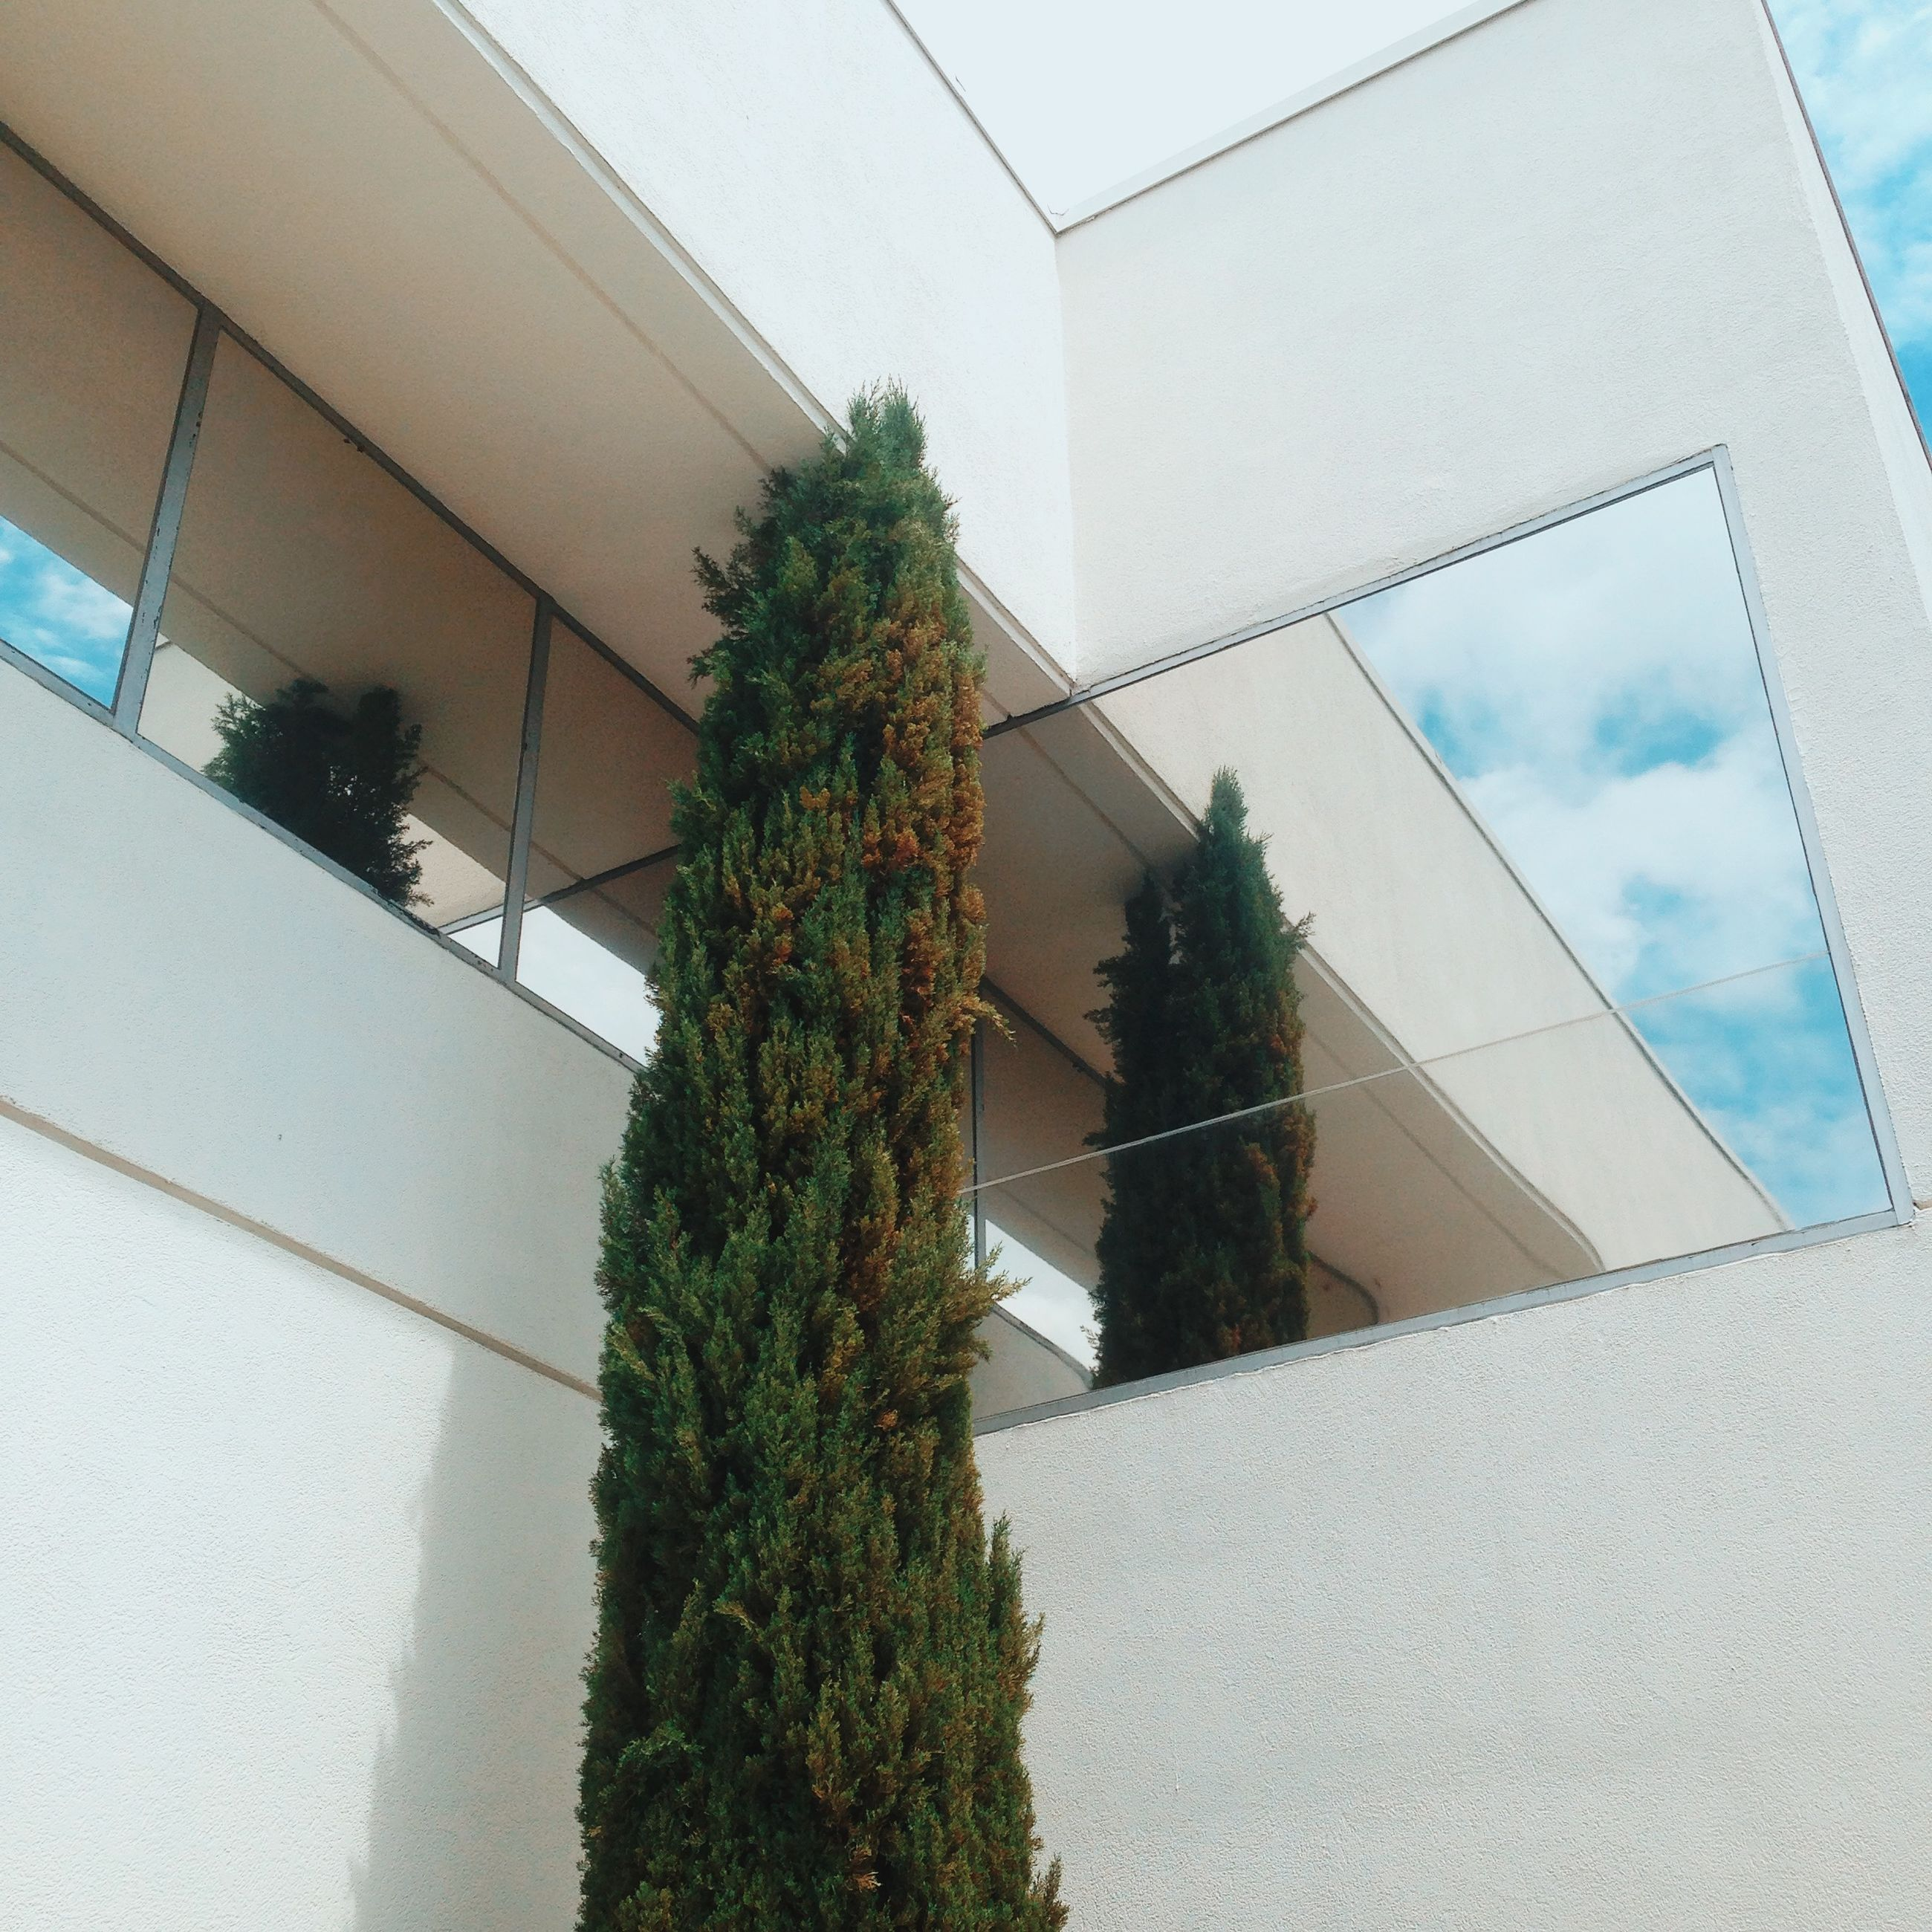 architecture, built structure, building exterior, low angle view, sky, plant, growth, building, window, tree, glass - material, house, day, reflection, wall - building feature, no people, palm tree, outdoors, residential building, residential structure